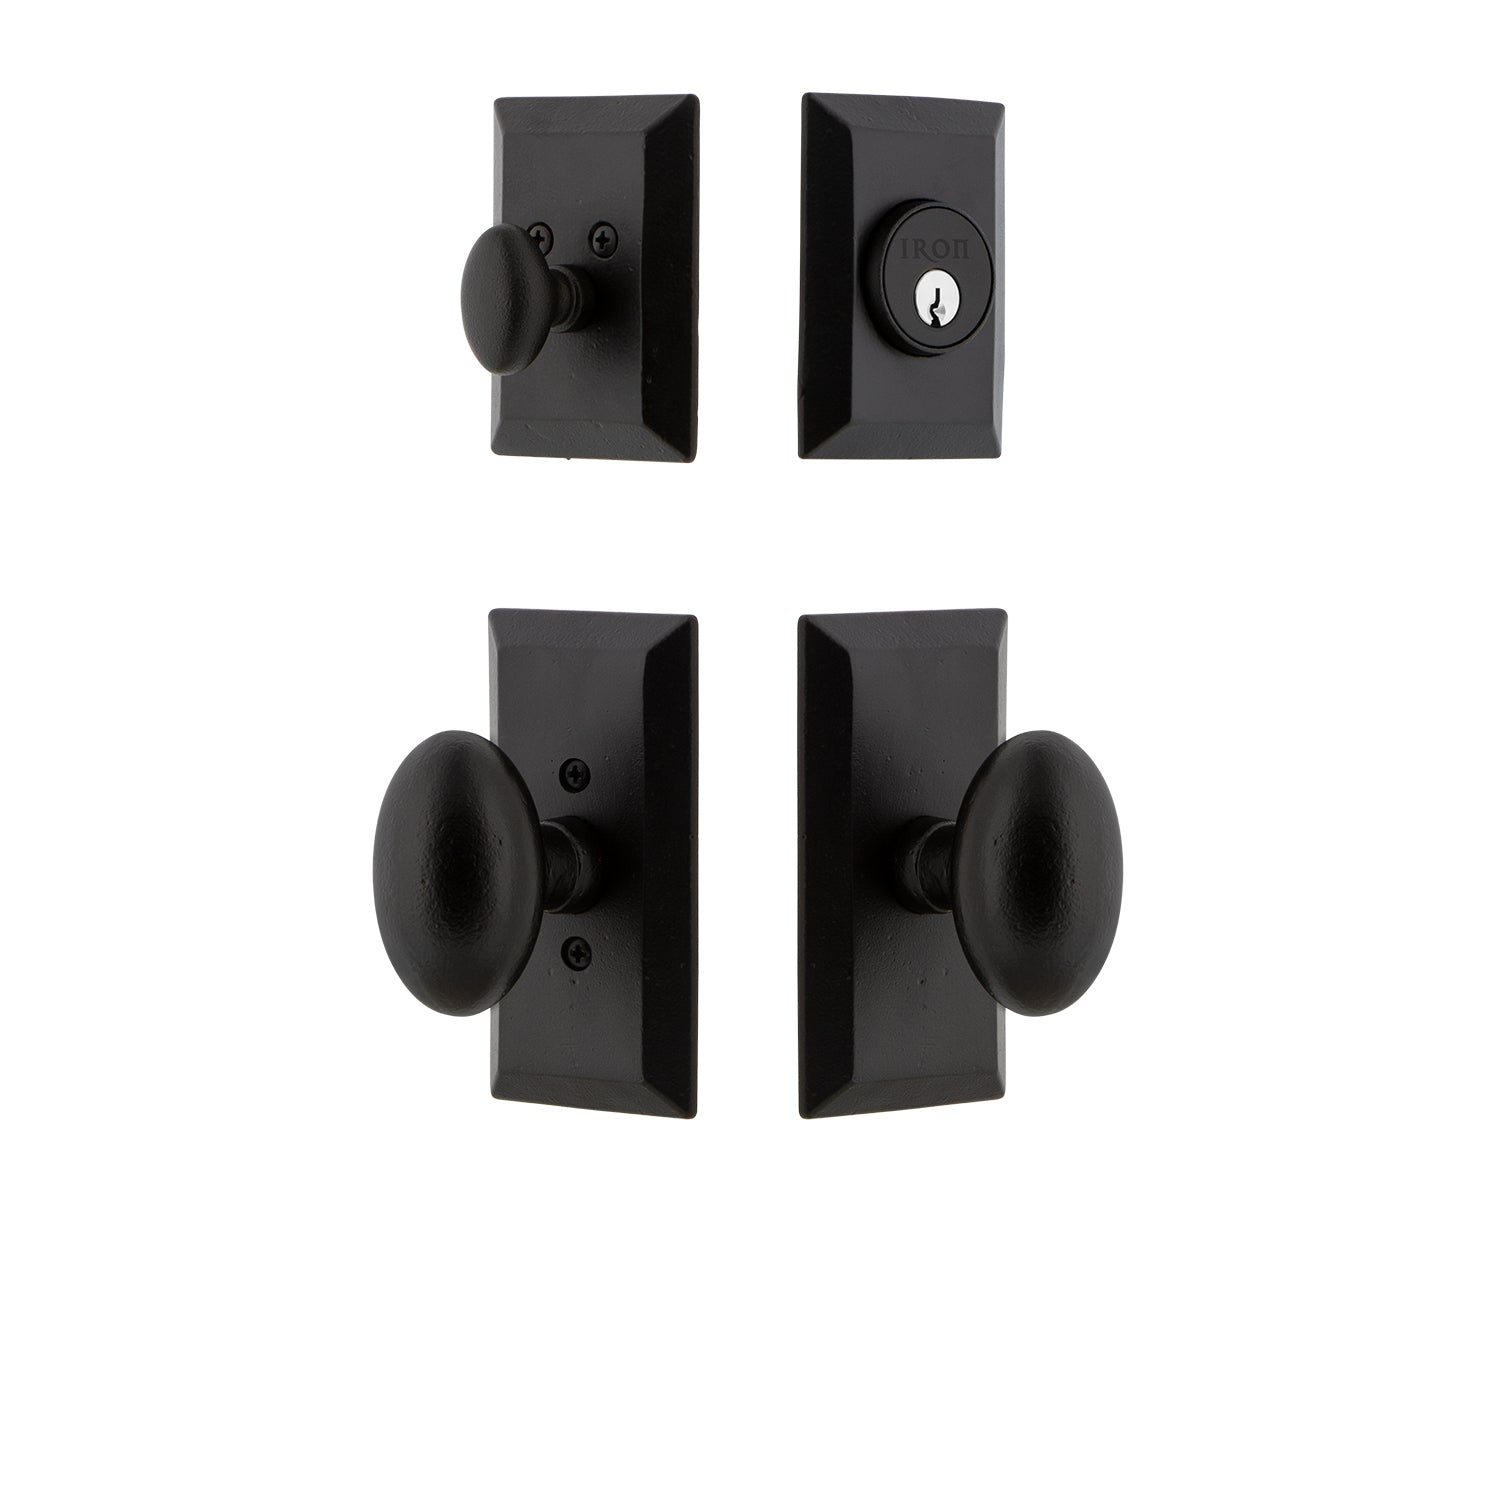 Vale Short Plate Entry Set with Aeg Knob